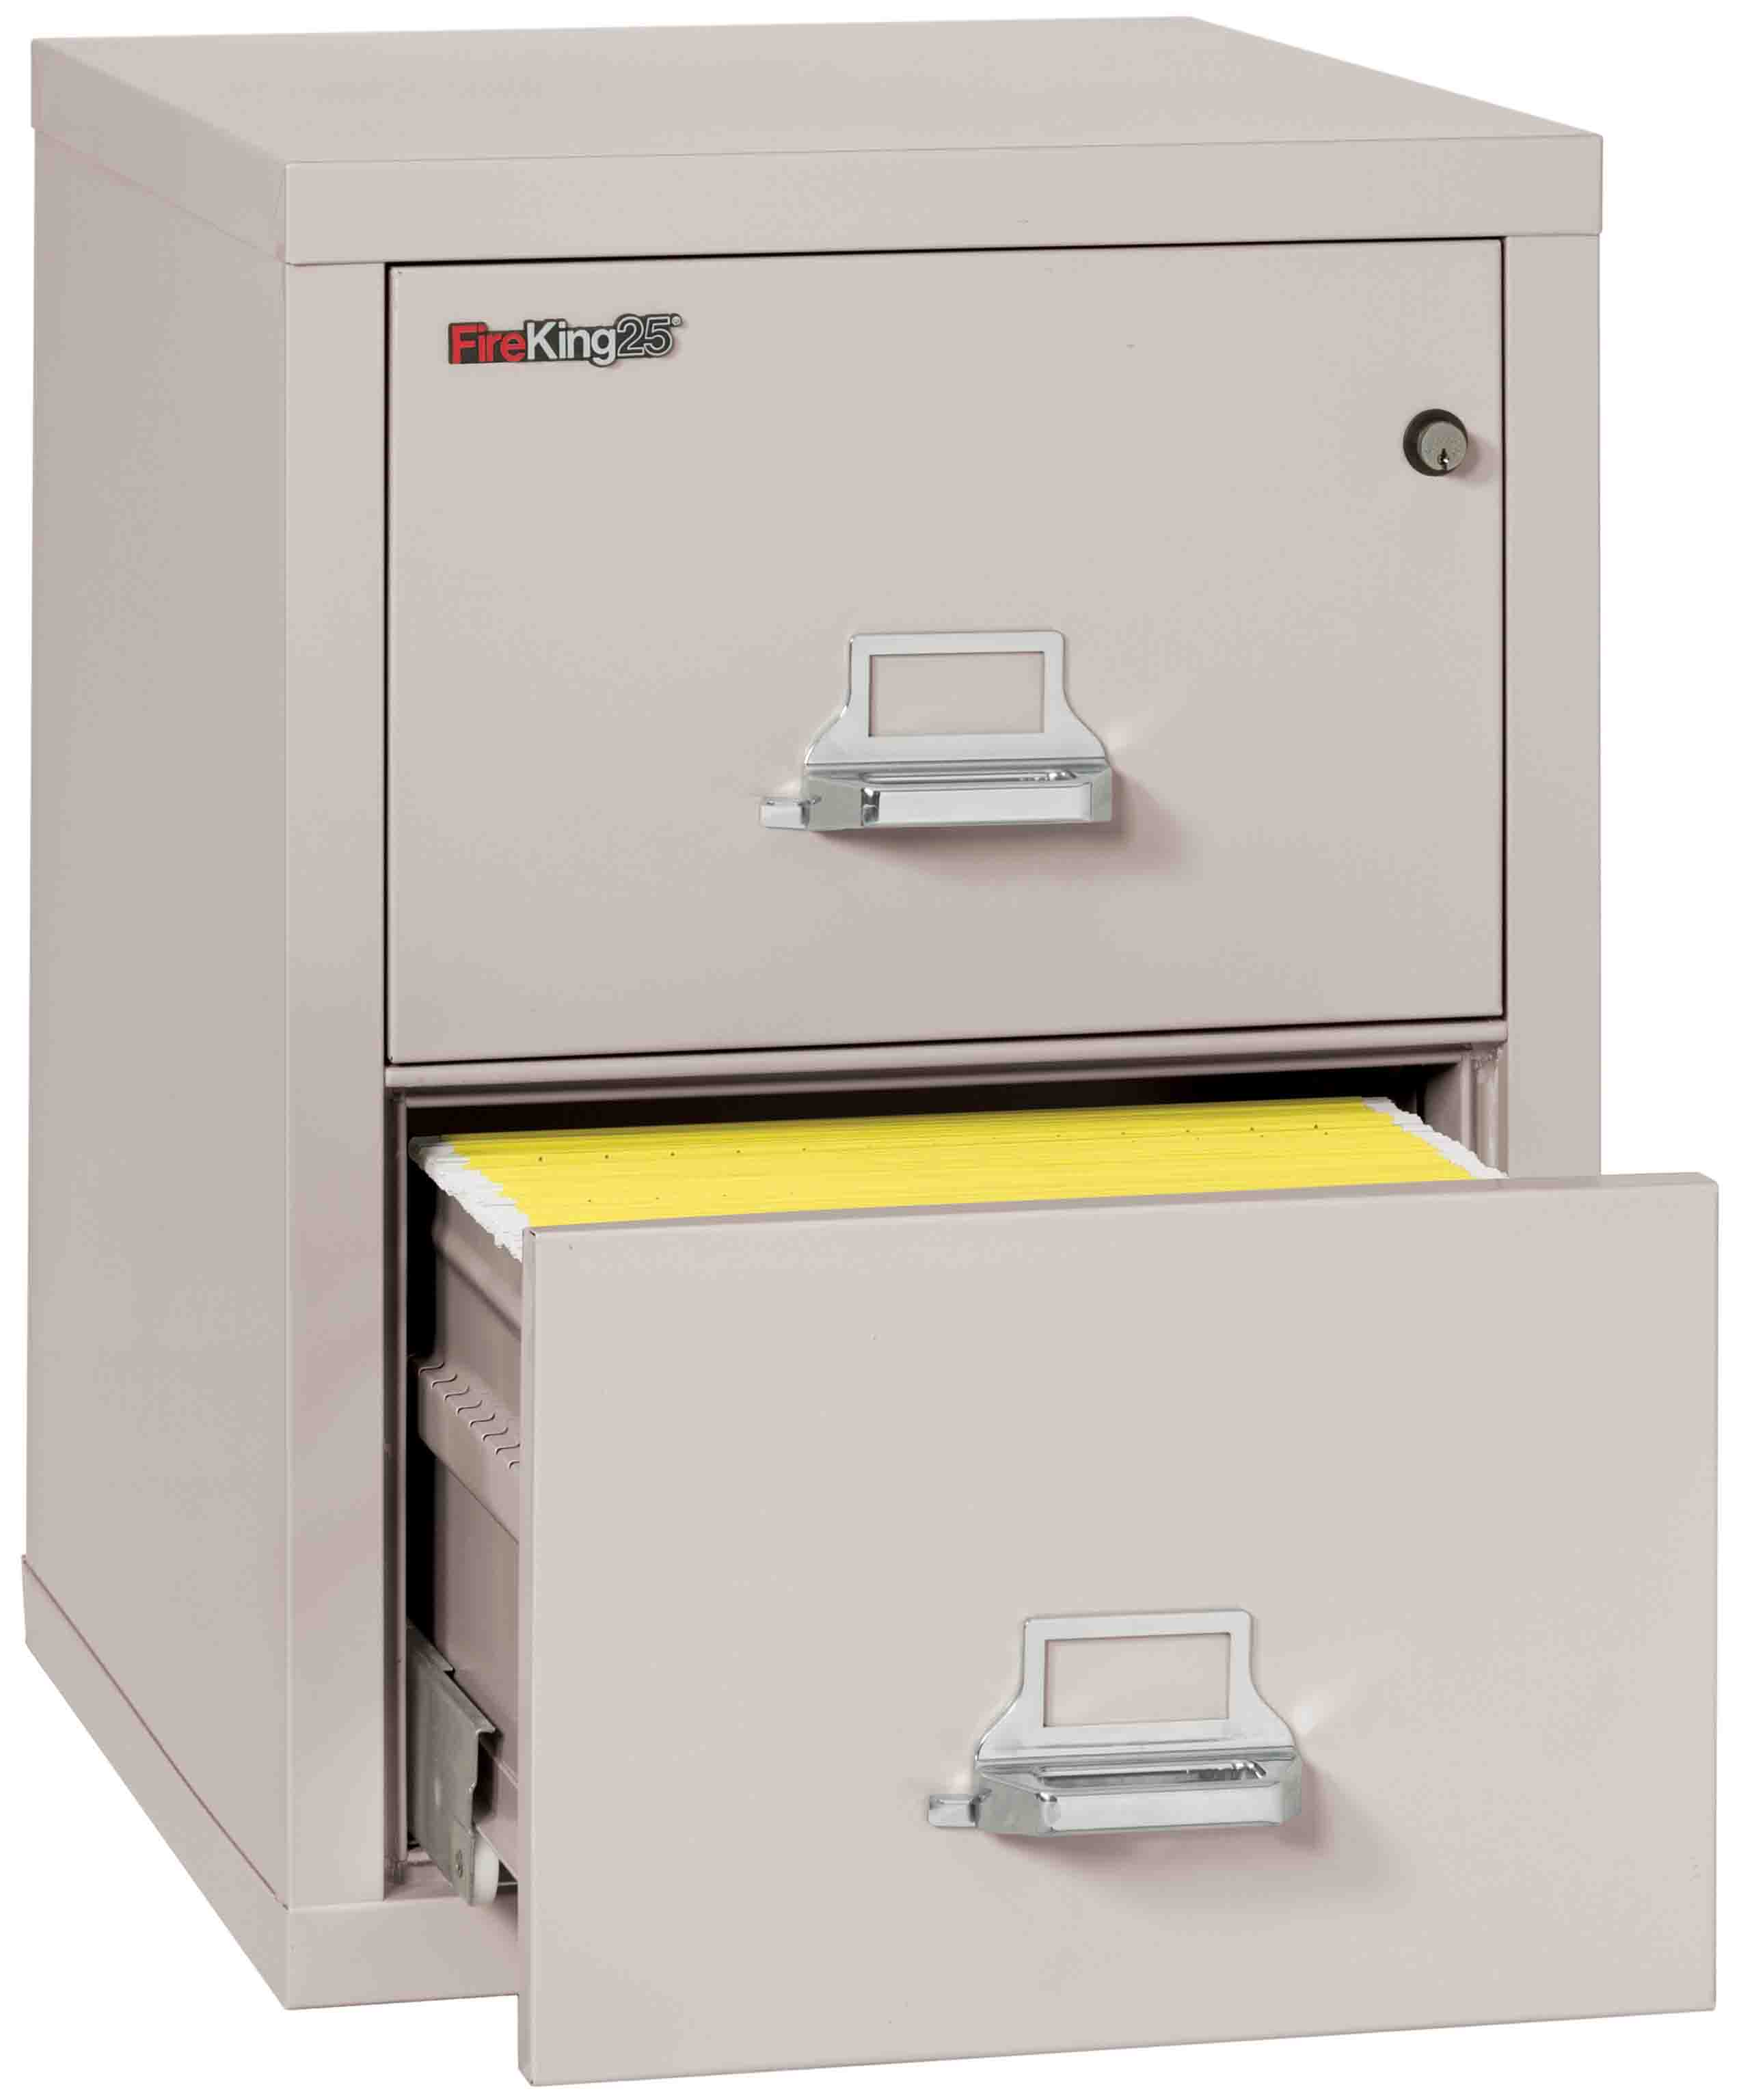 fireking file cabinets king filing cabinets cabinets matttroy 15445